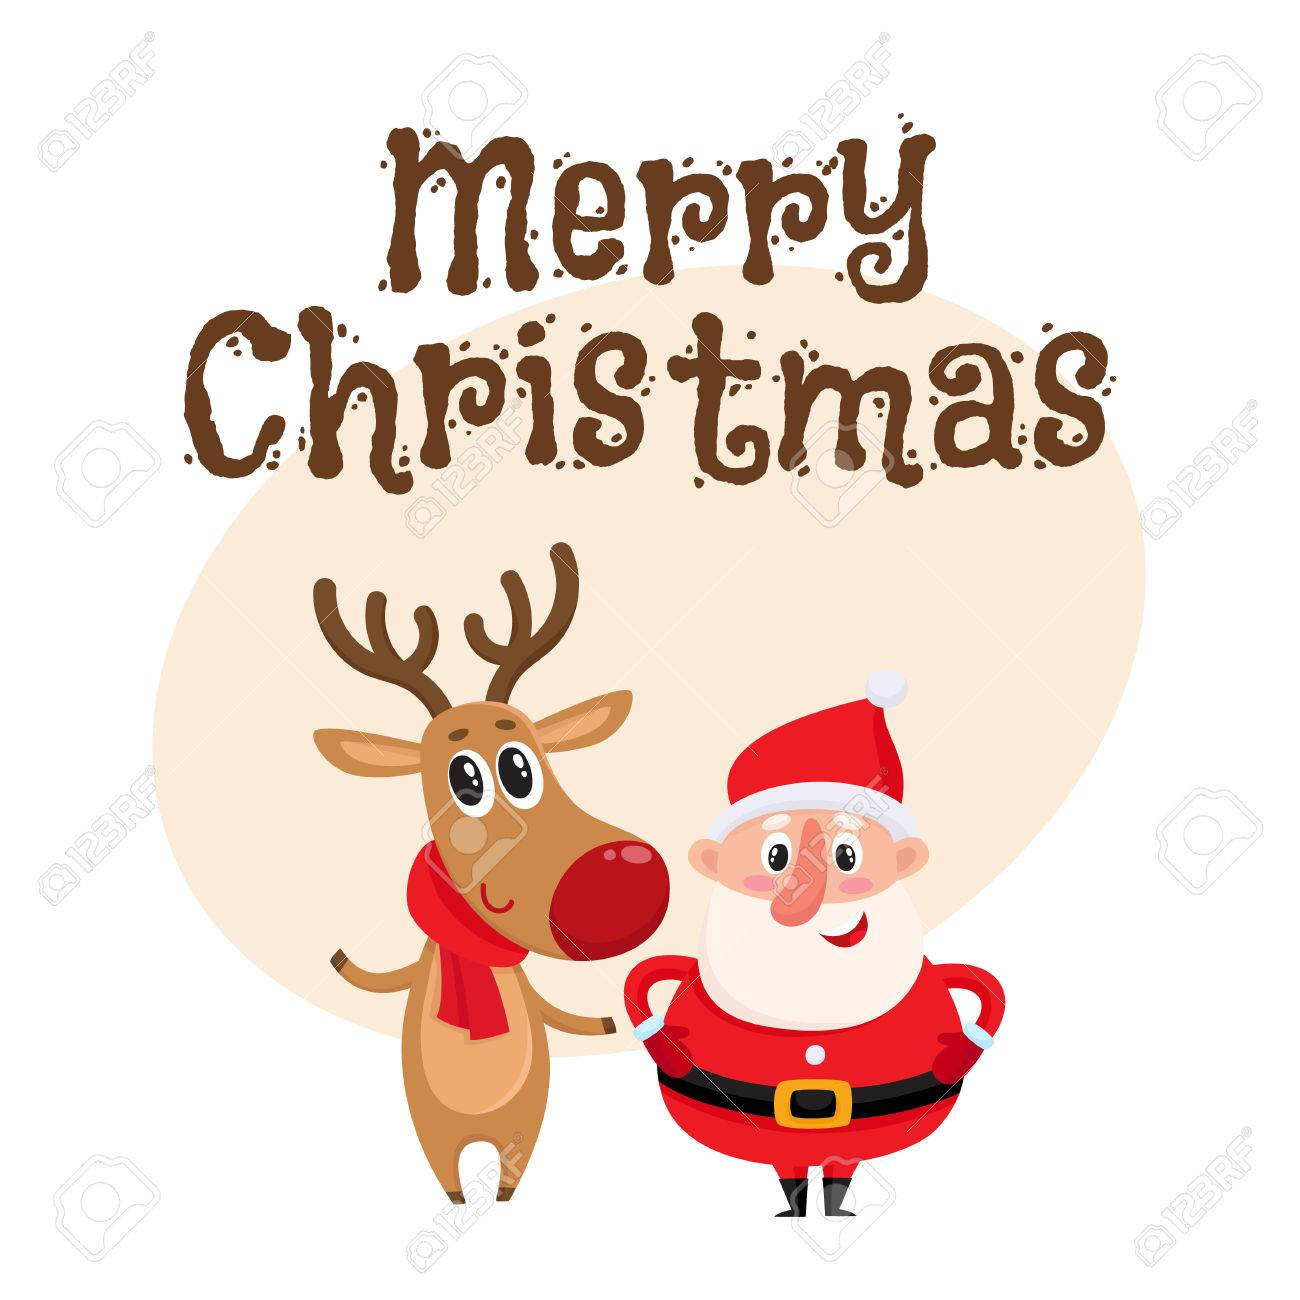 merry christmas greeting card template with funny santa claus and reindeer in red scarf standing together